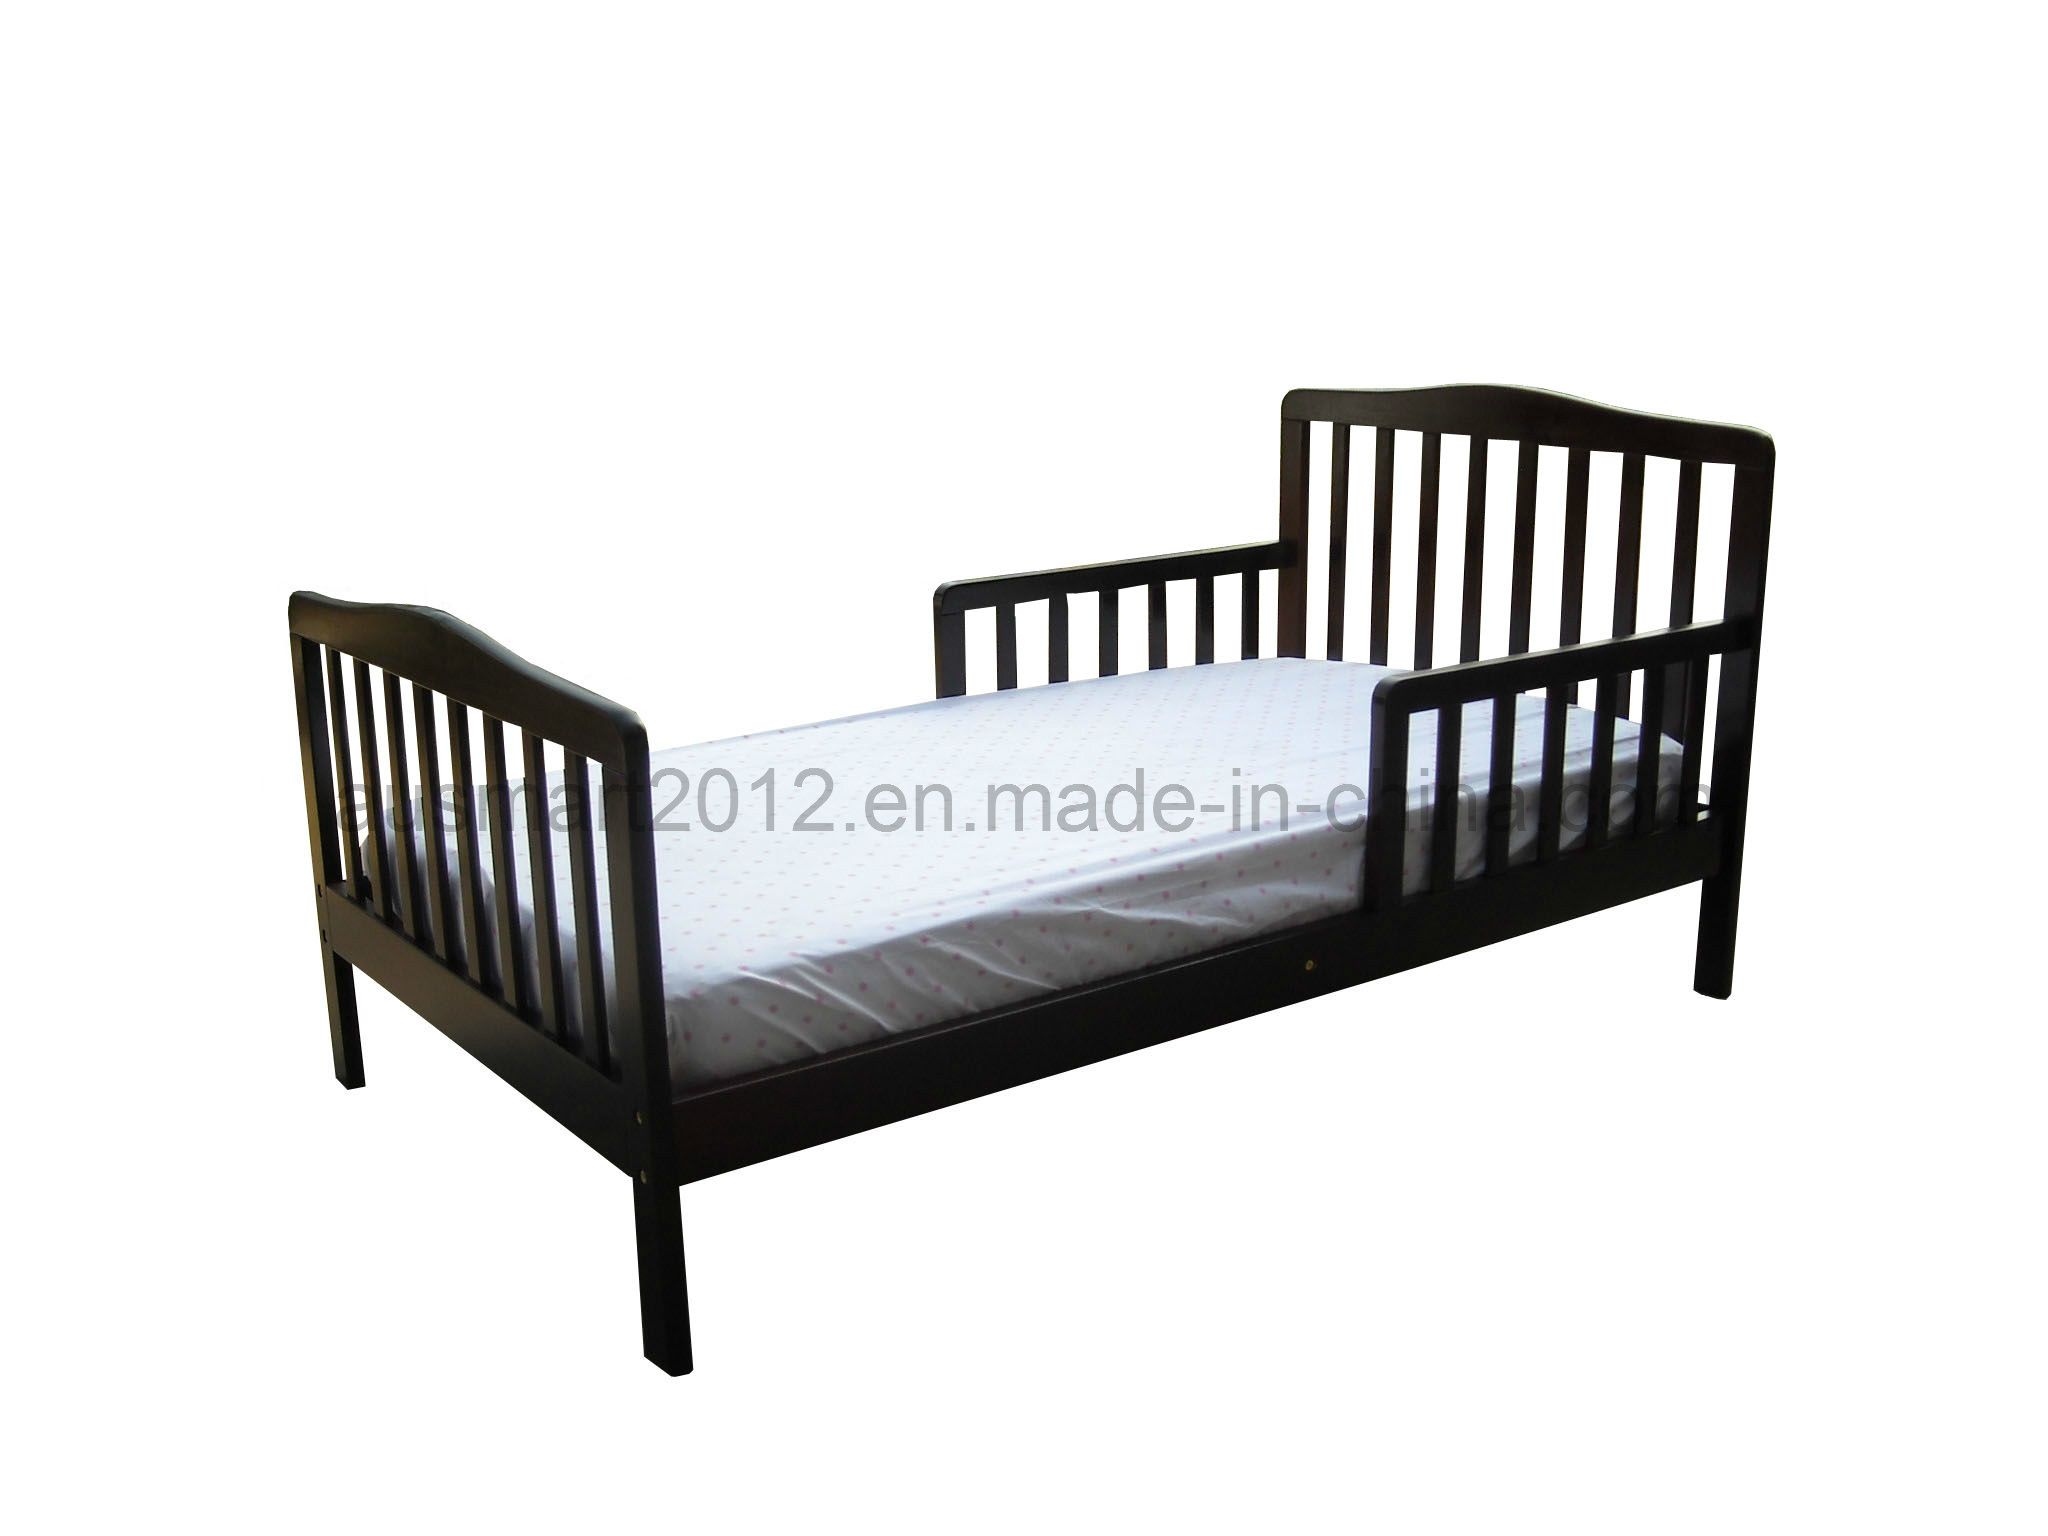 Wonderful image of  Wooden Toddler Bed Black Color China Wood Single Bed Children Bed with #51517A color and 2048x1536 pixels